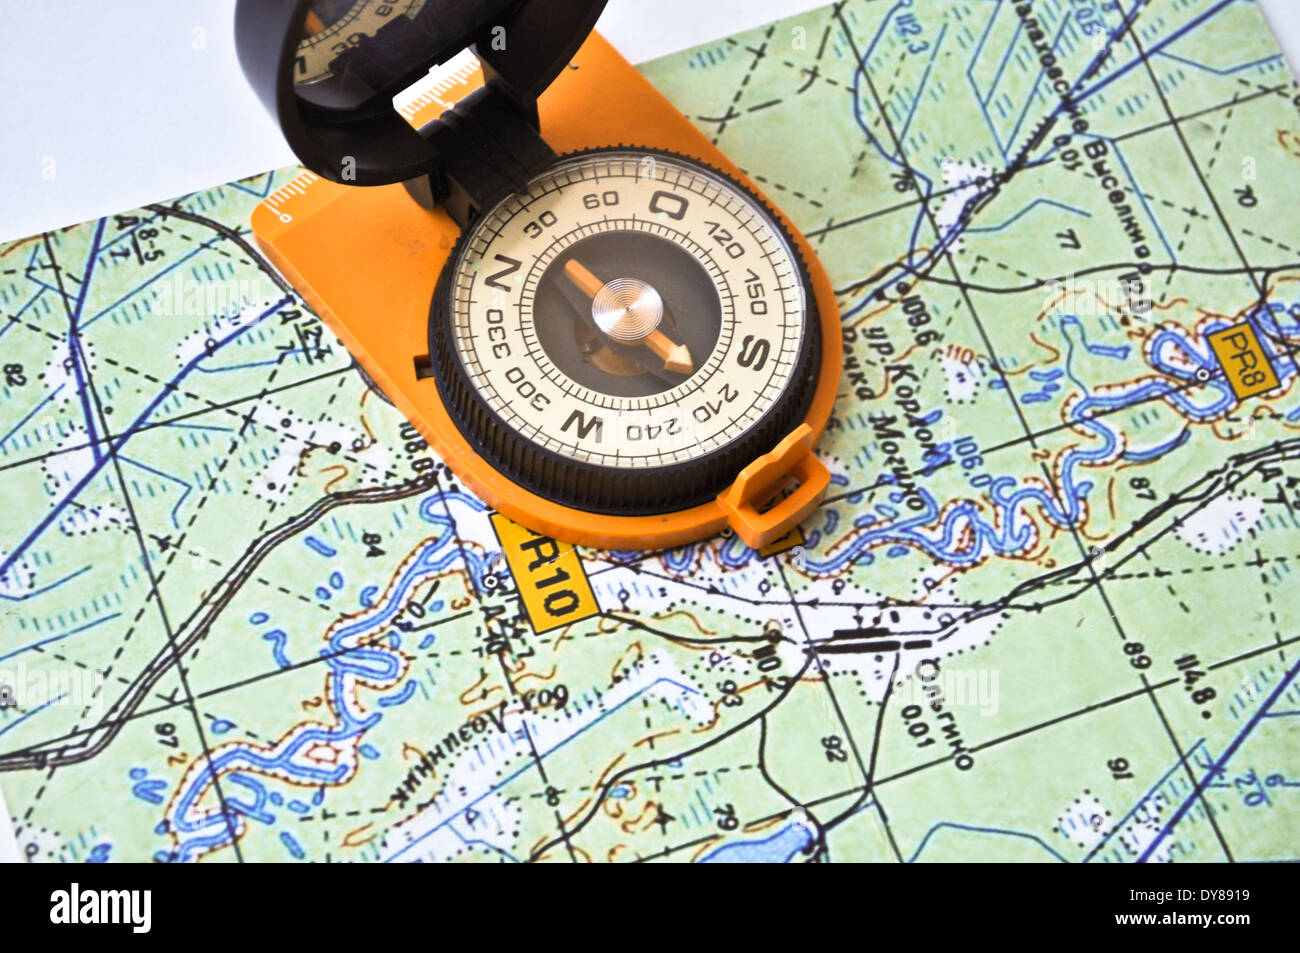 Topographic map lies on a white background and there is a magnetic topographic map lies on a white background and there is a magnetic compass in a black case on an orange ground gumiabroncs Images